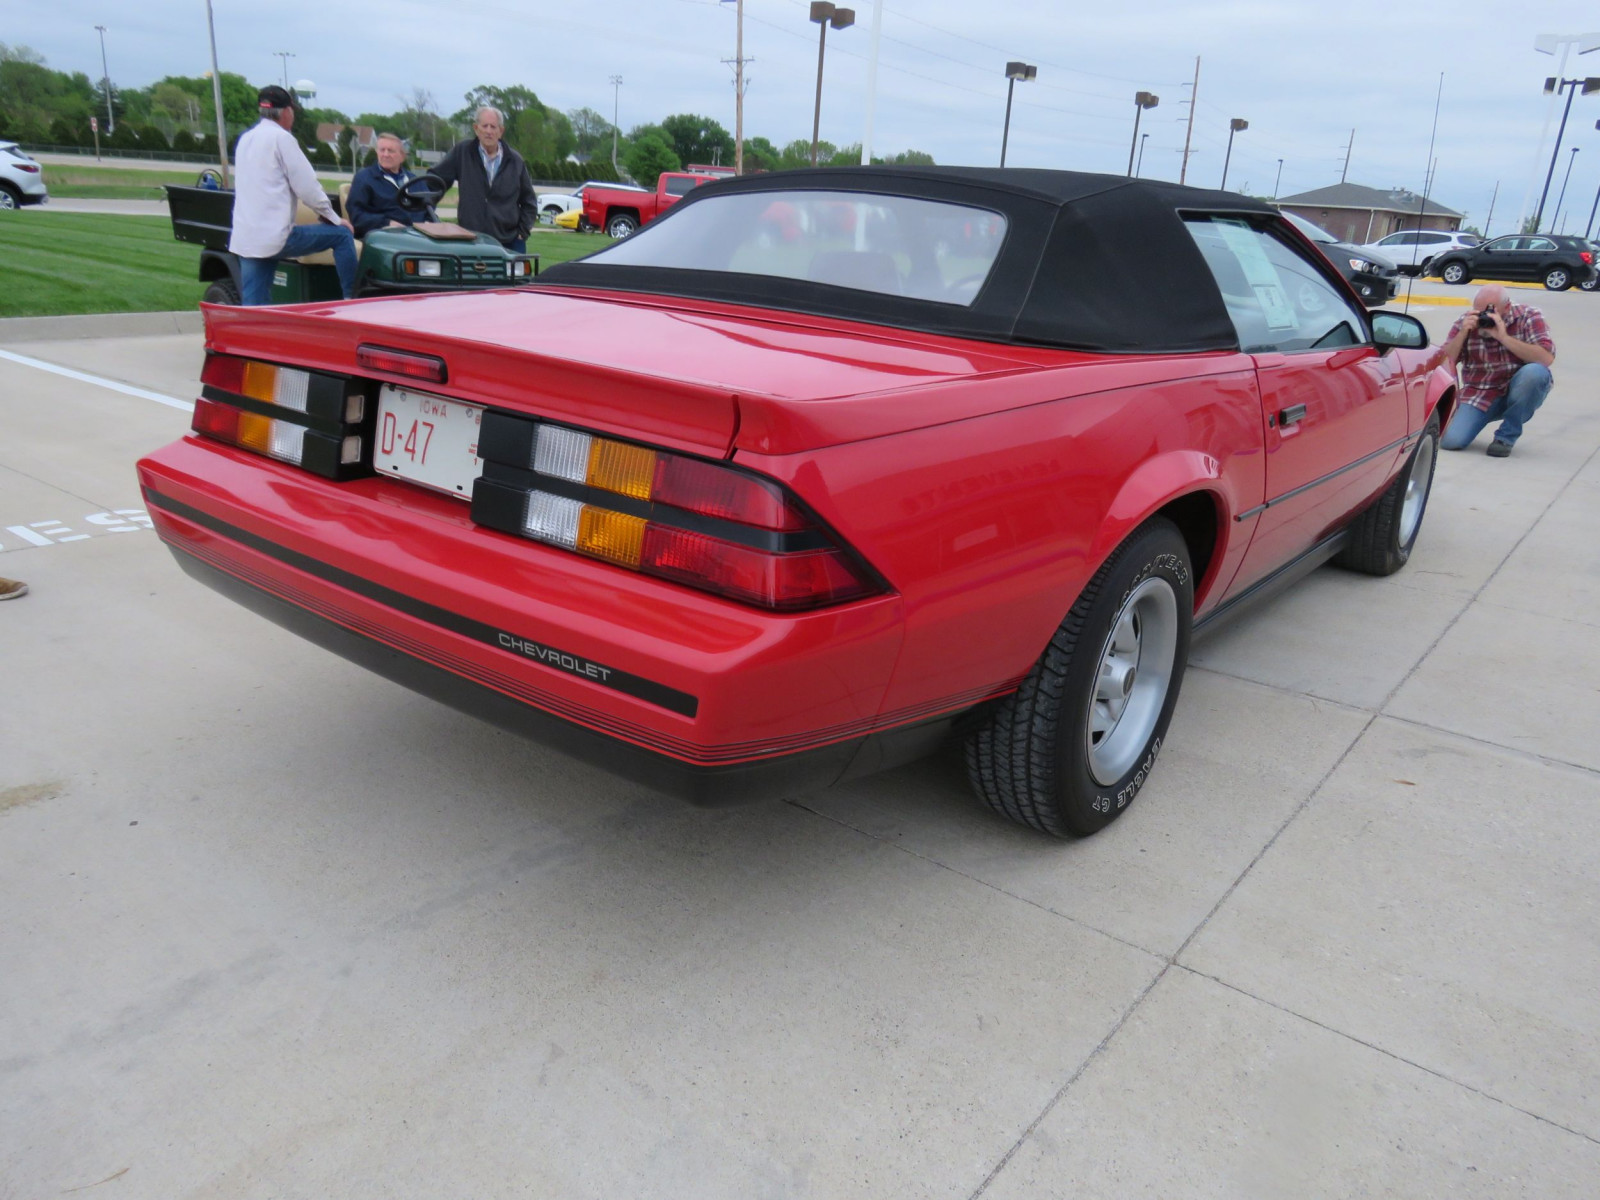 1987 Chevrolet Camaro RS Convertible - Image 11